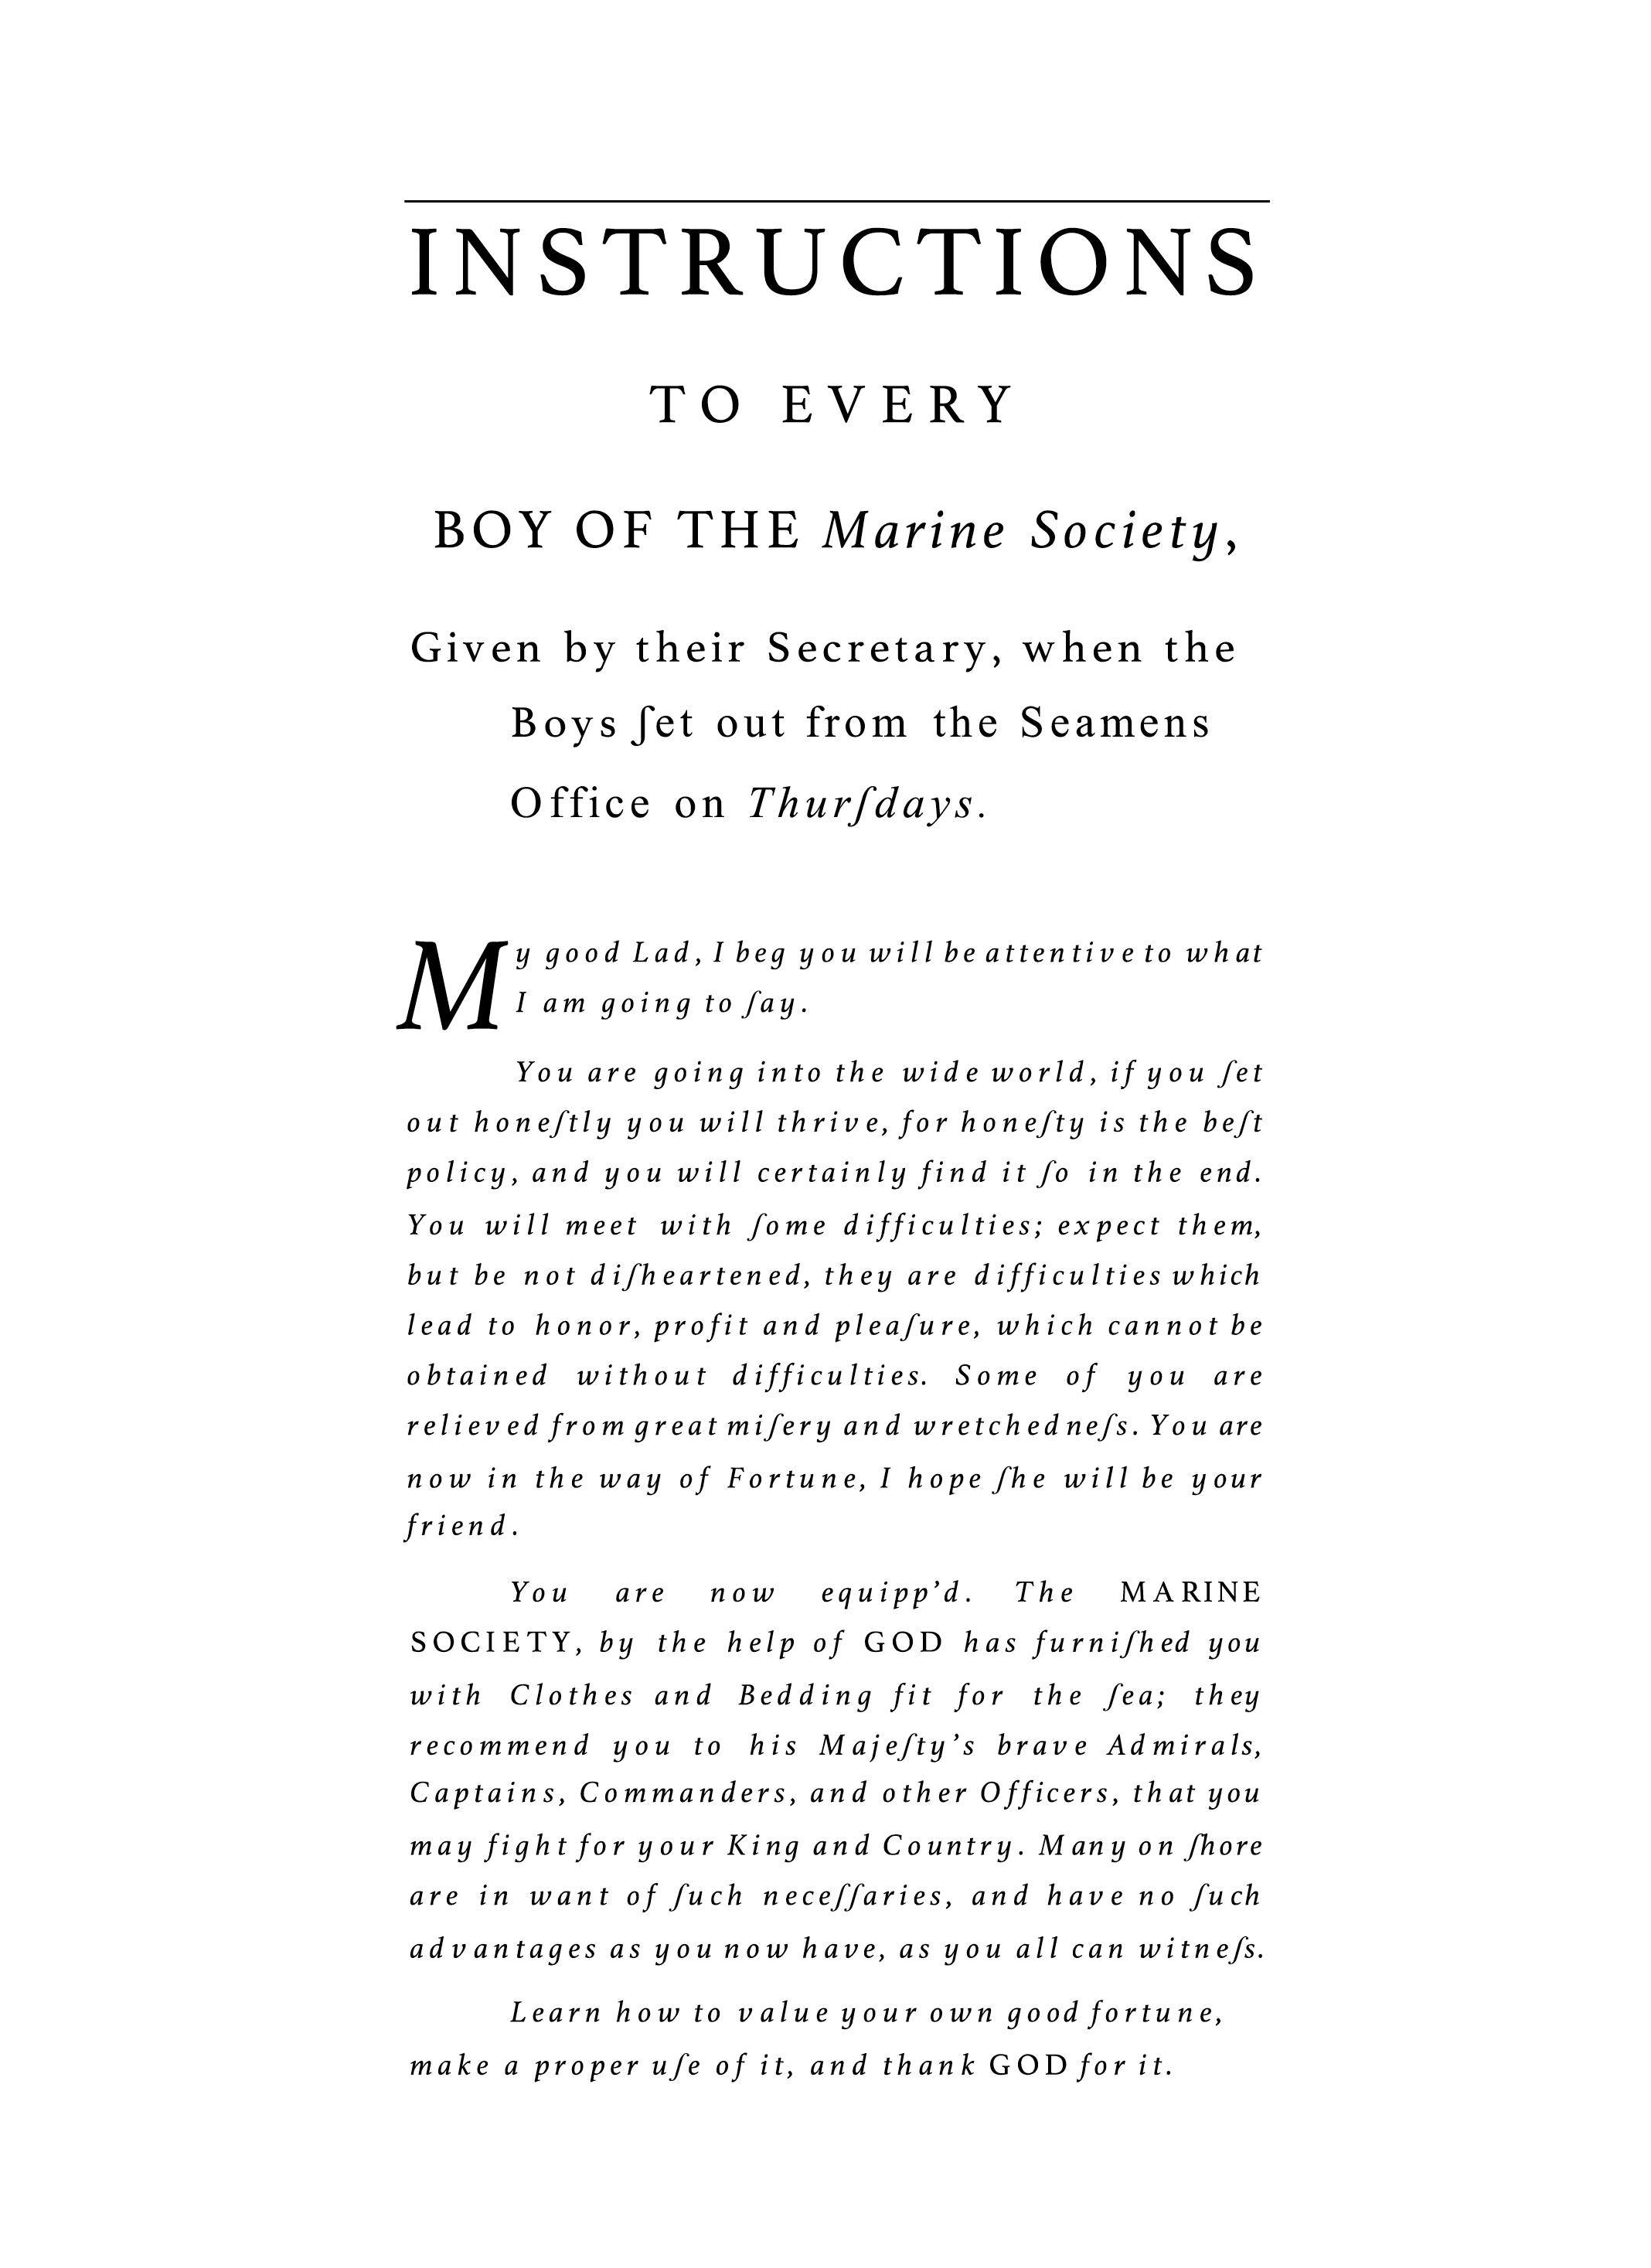 Marine Society, Instructions to Every Boy, Jonas Hanway, Bishopsgate, London, St. John's Cemetery Project, Old Parramattans, Benjamin Ratty Convict Constable